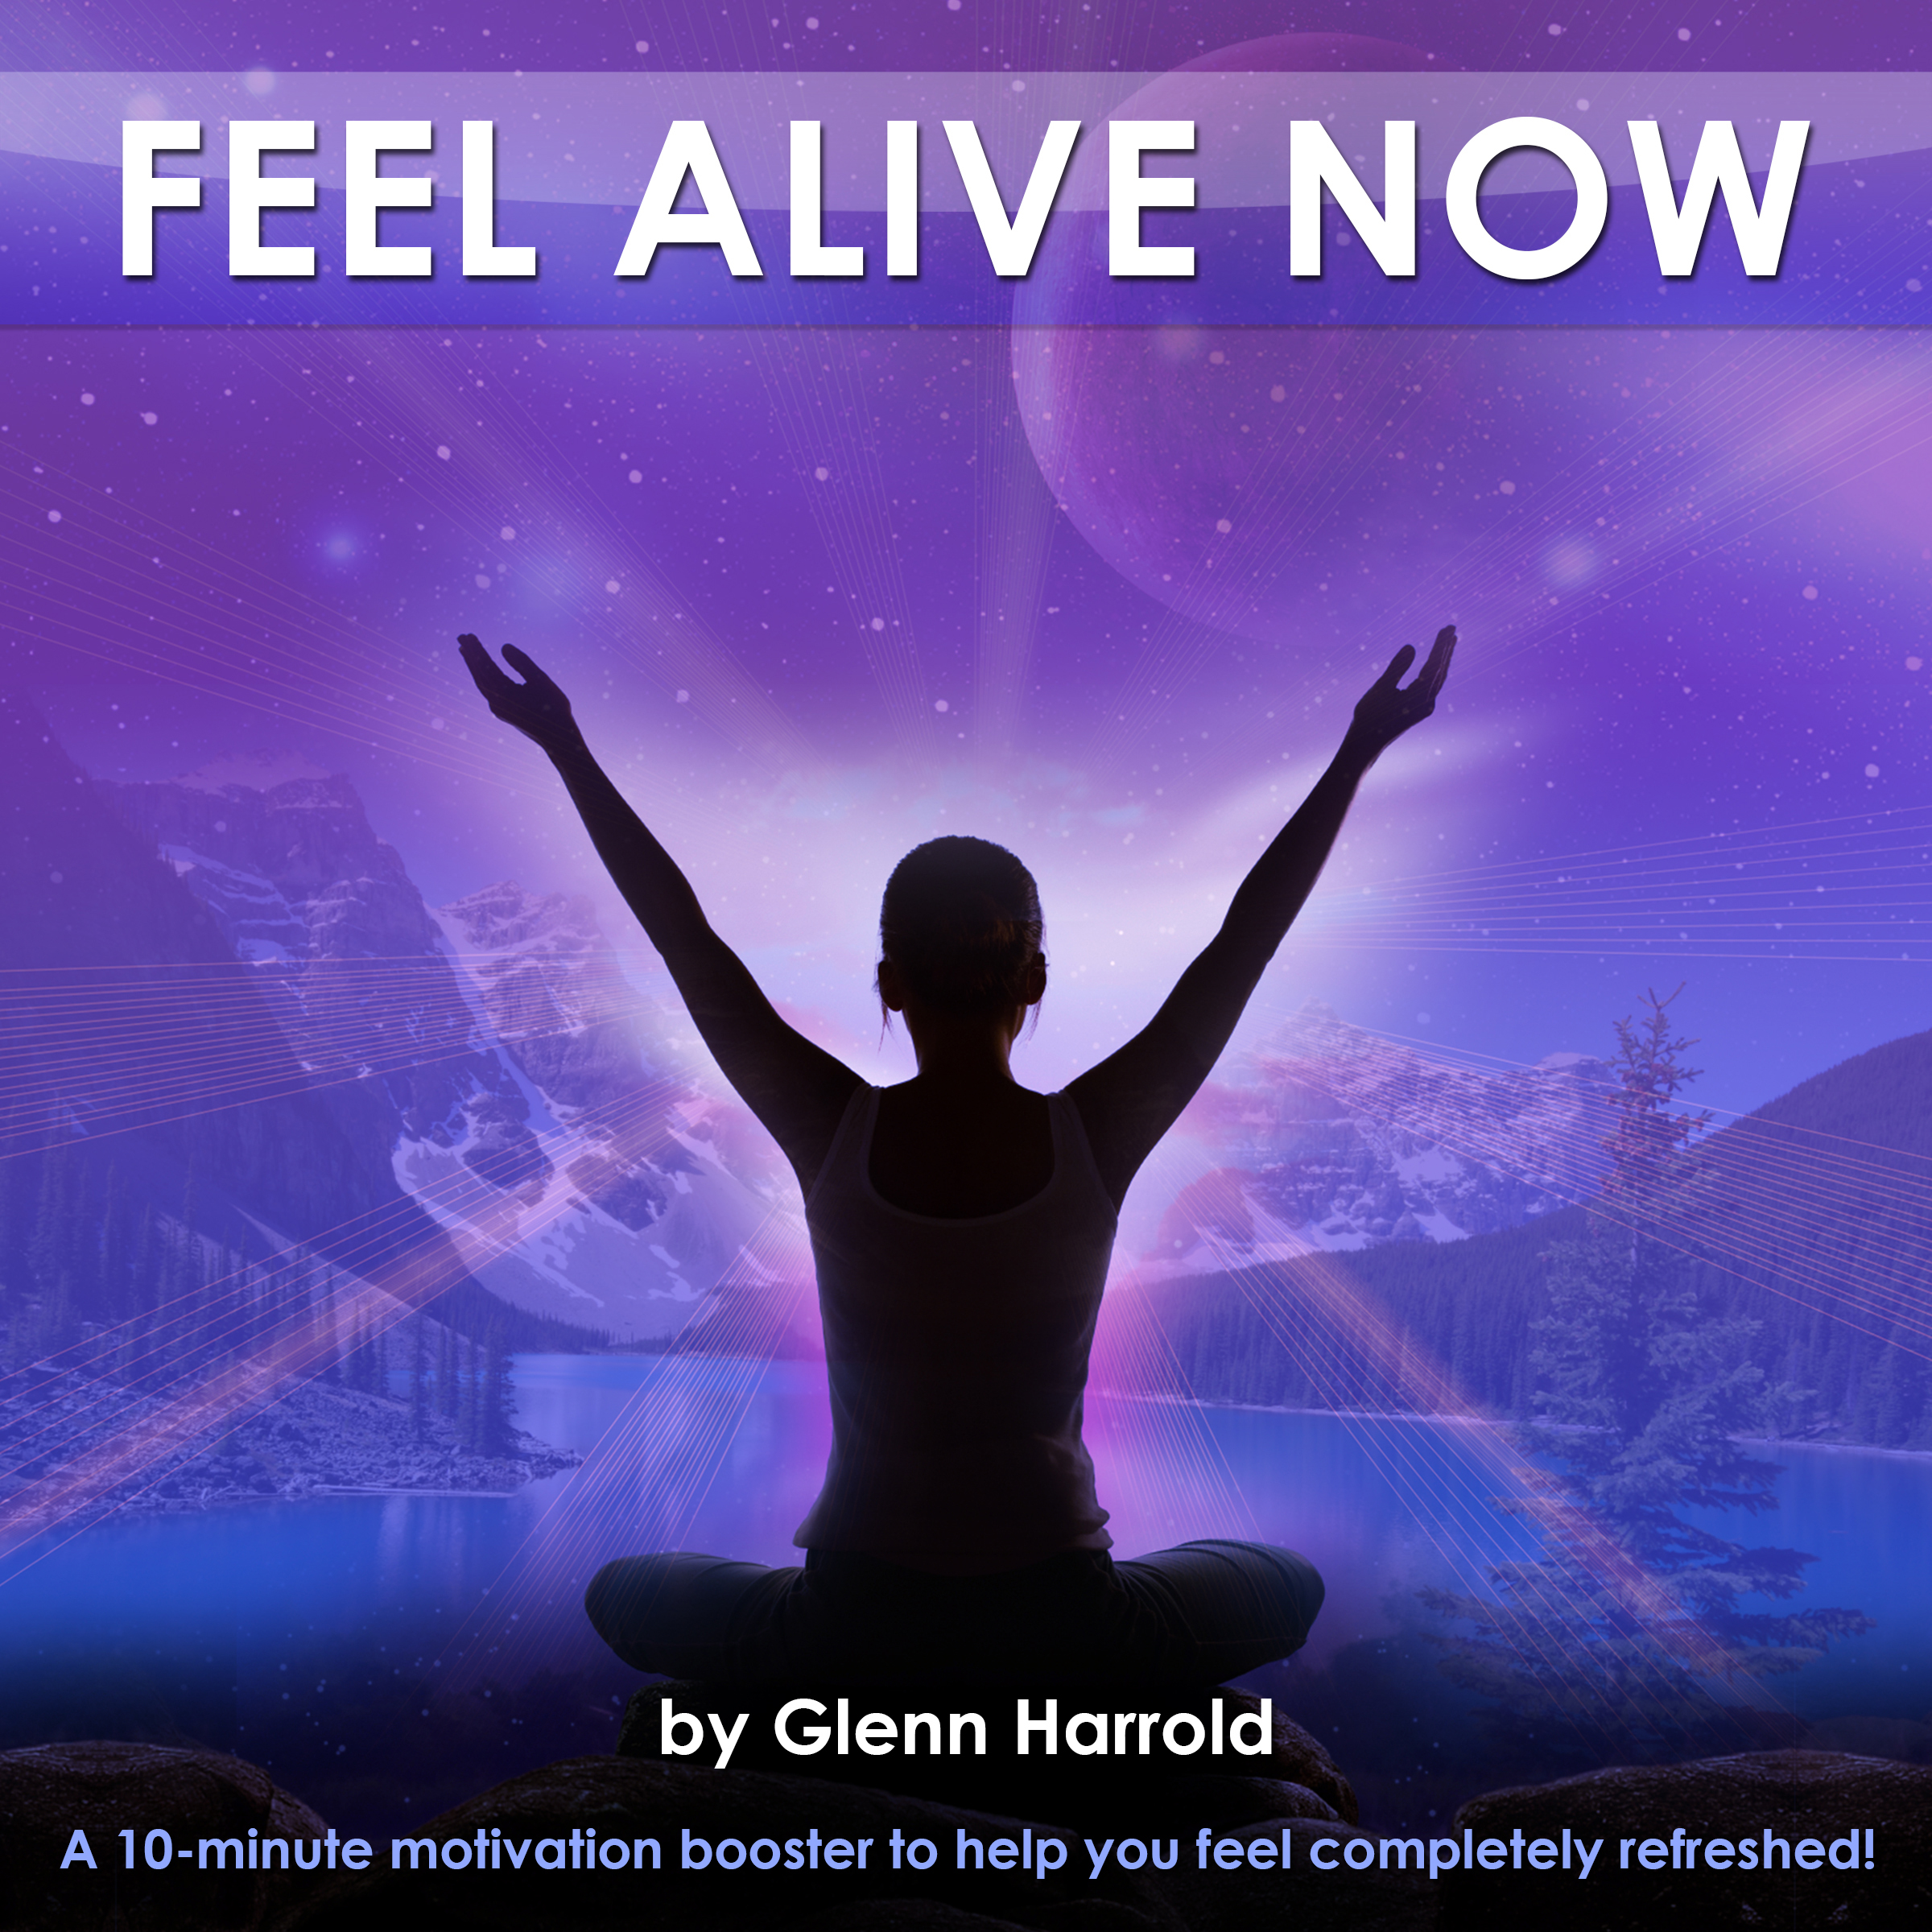 Feel Alive Now: A 10-Minute Motivation Booster ...